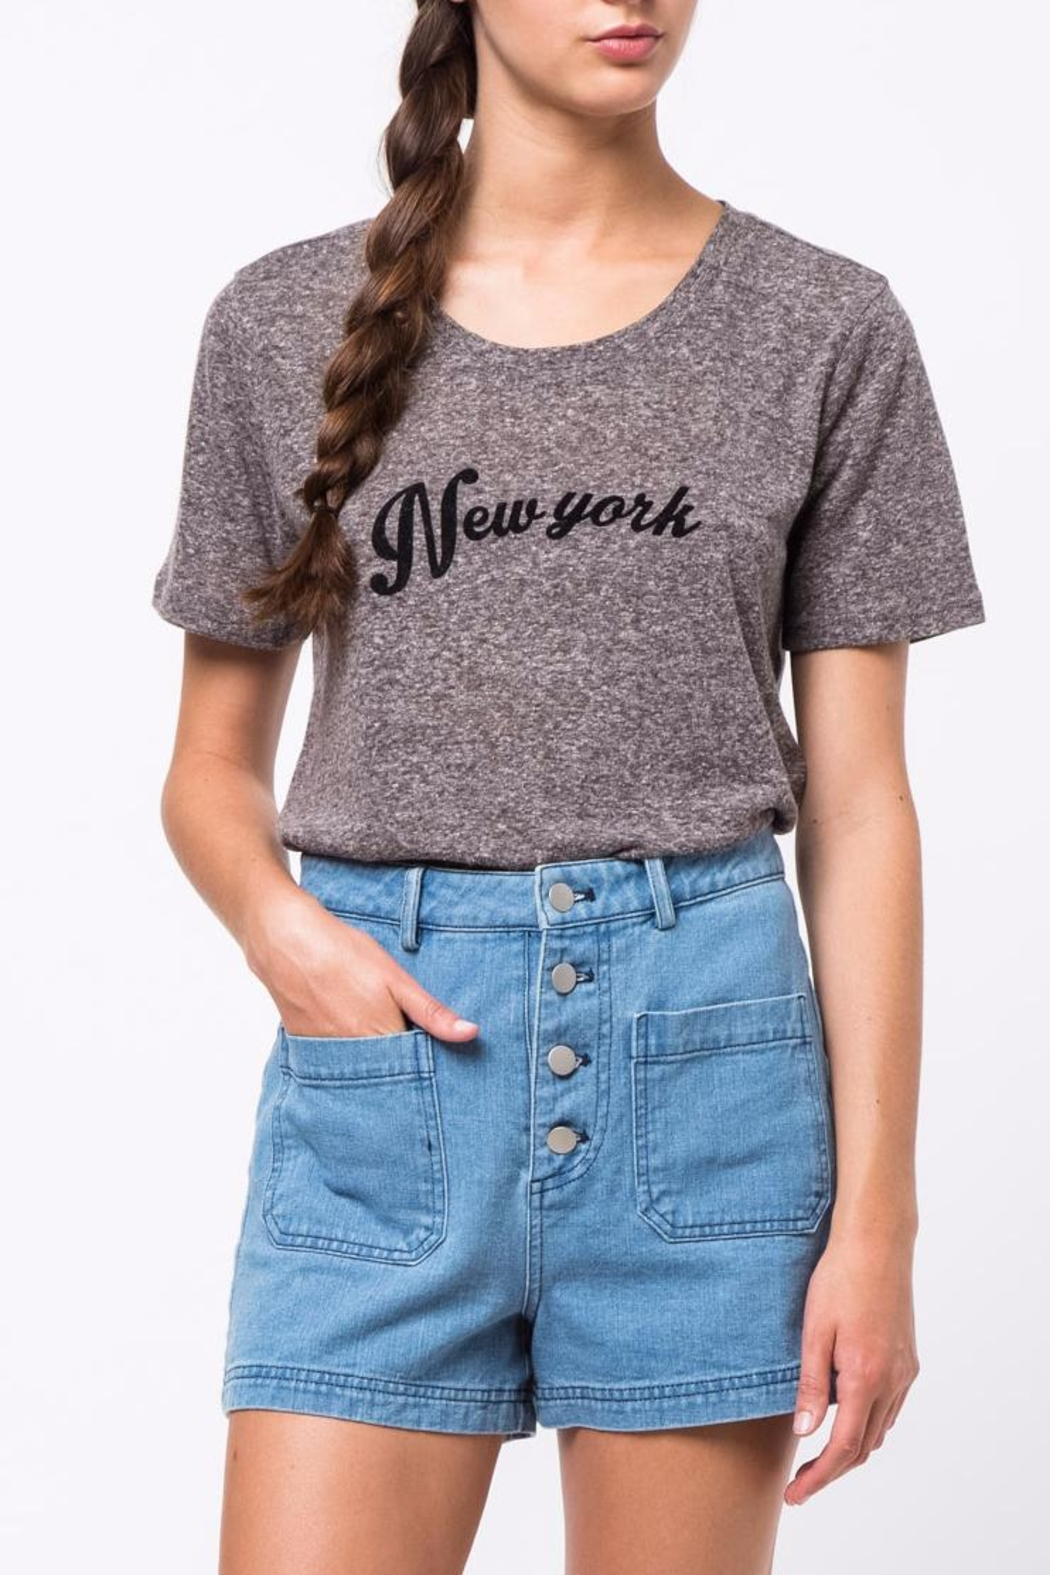 Movint New York Printed T-Shirt - Front Cropped Image